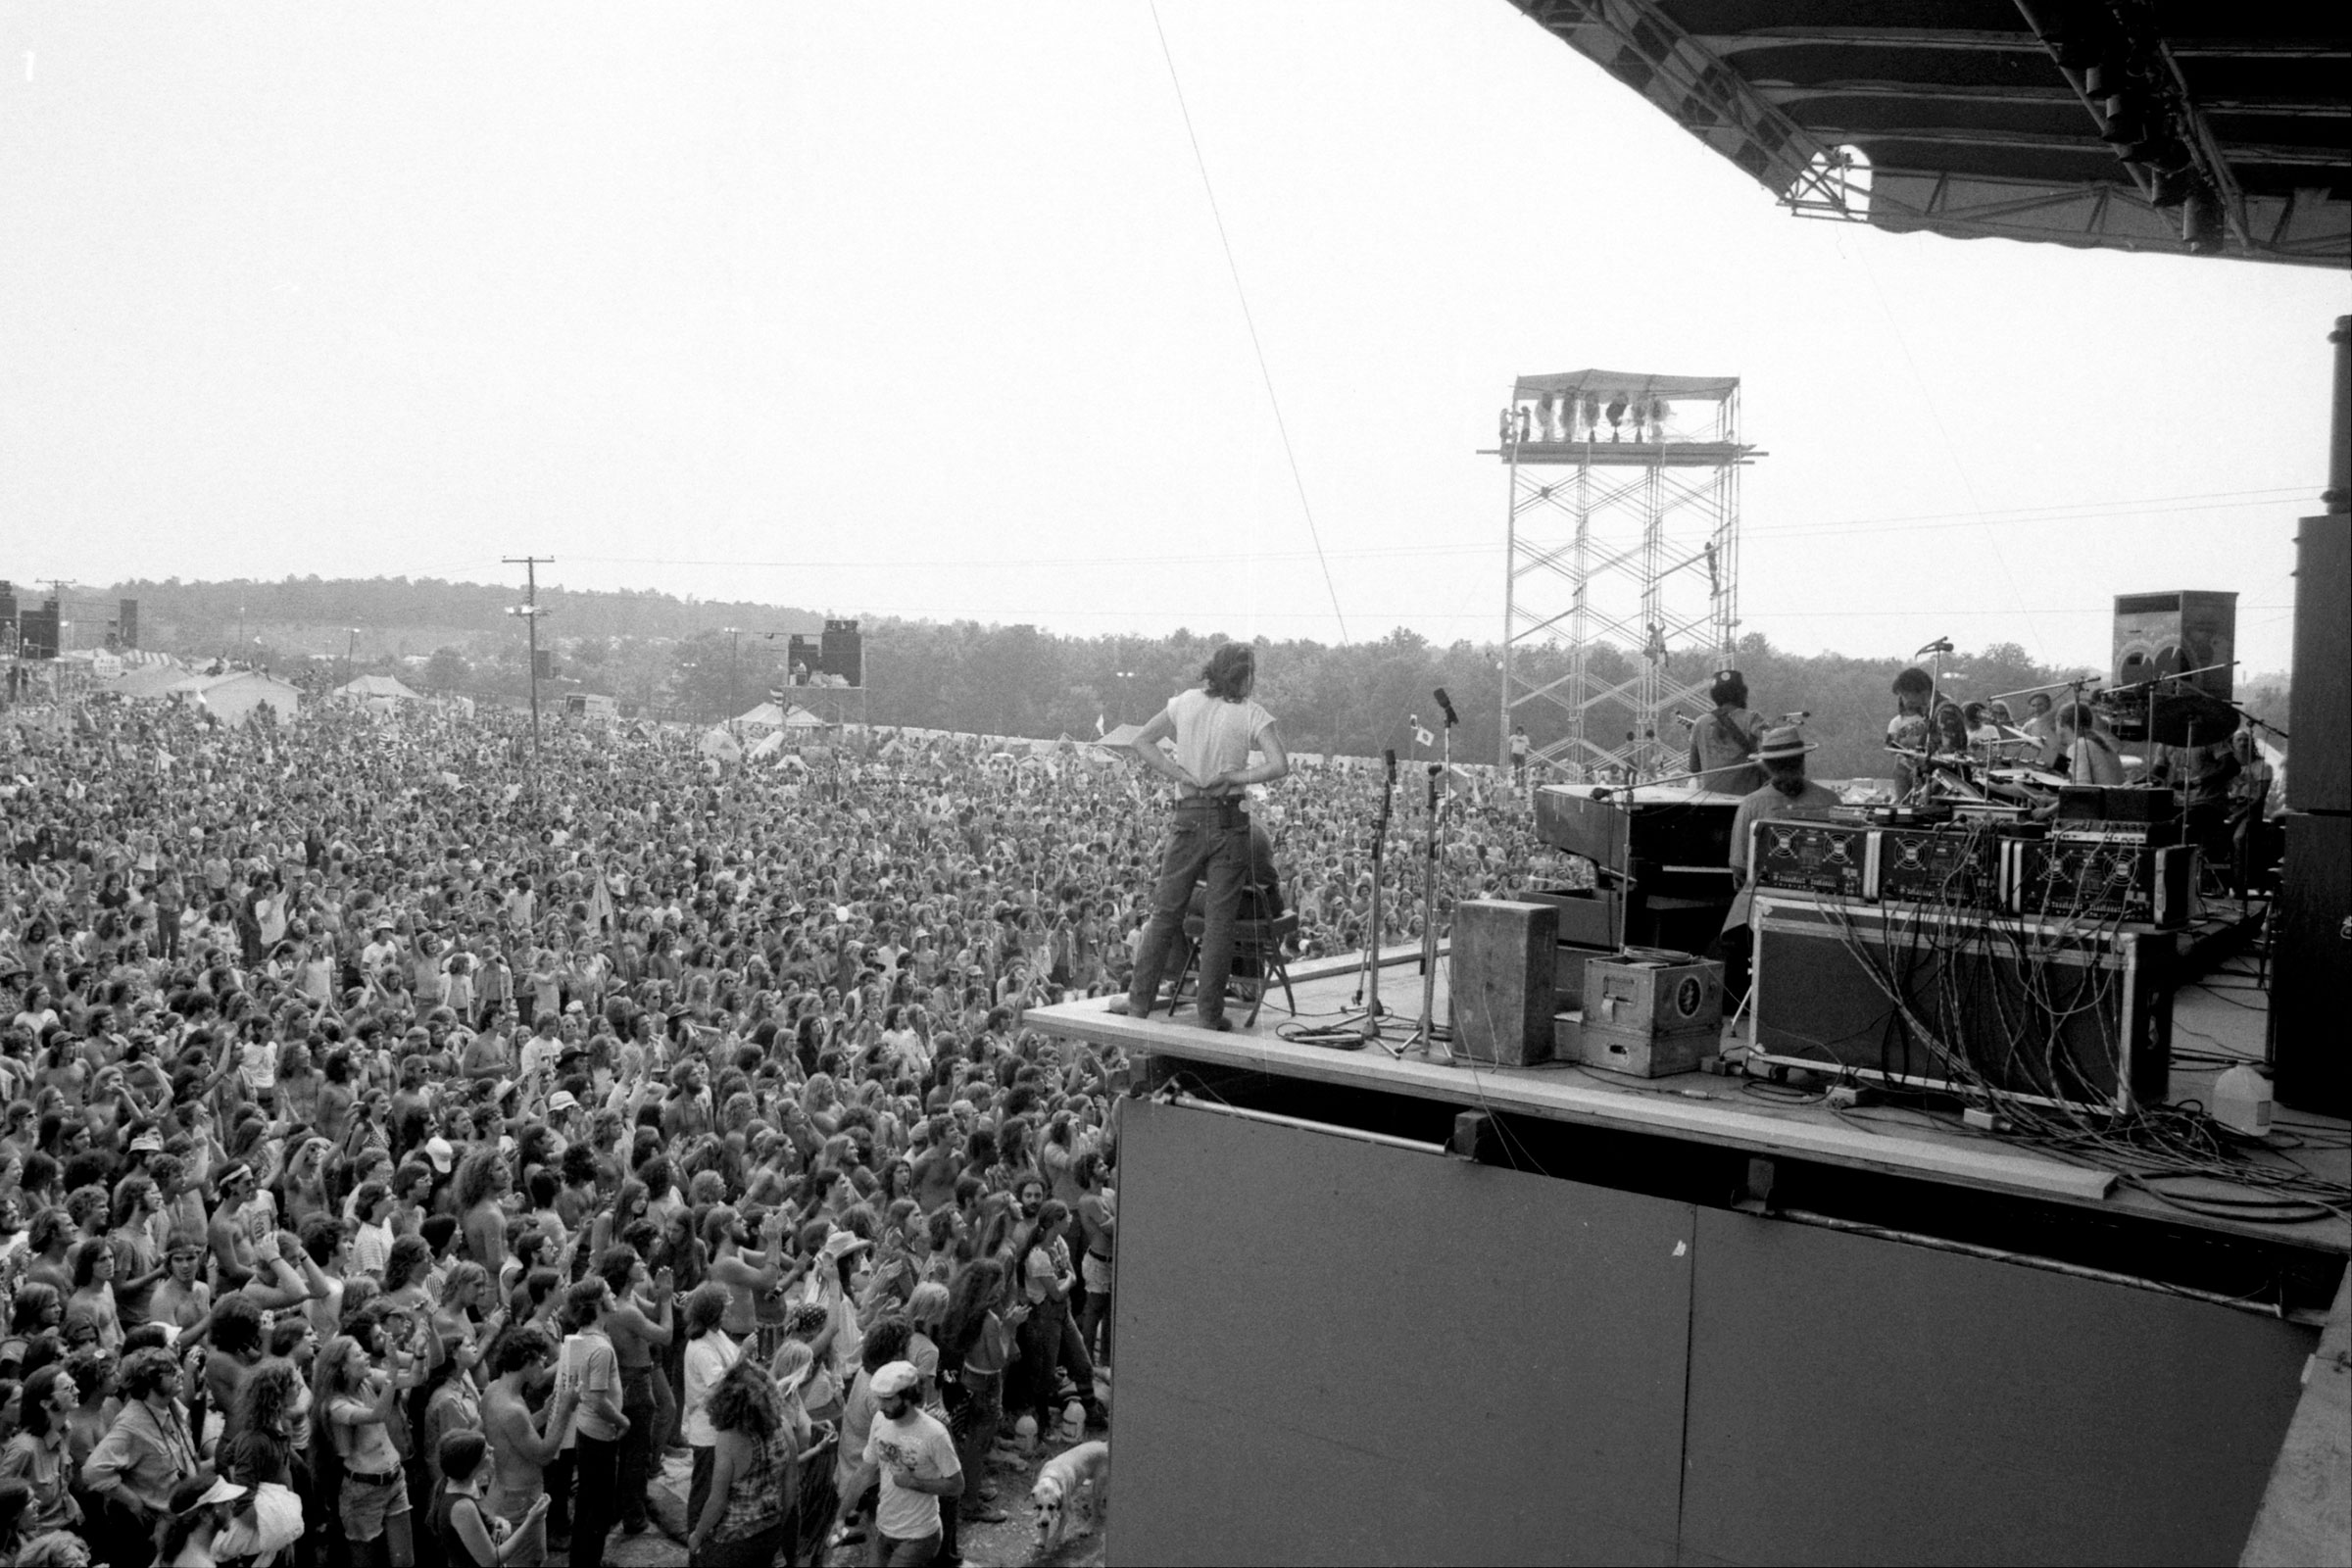 Counterculture '73: Summer Jam, Timothy Leary and the Sexual Revolution